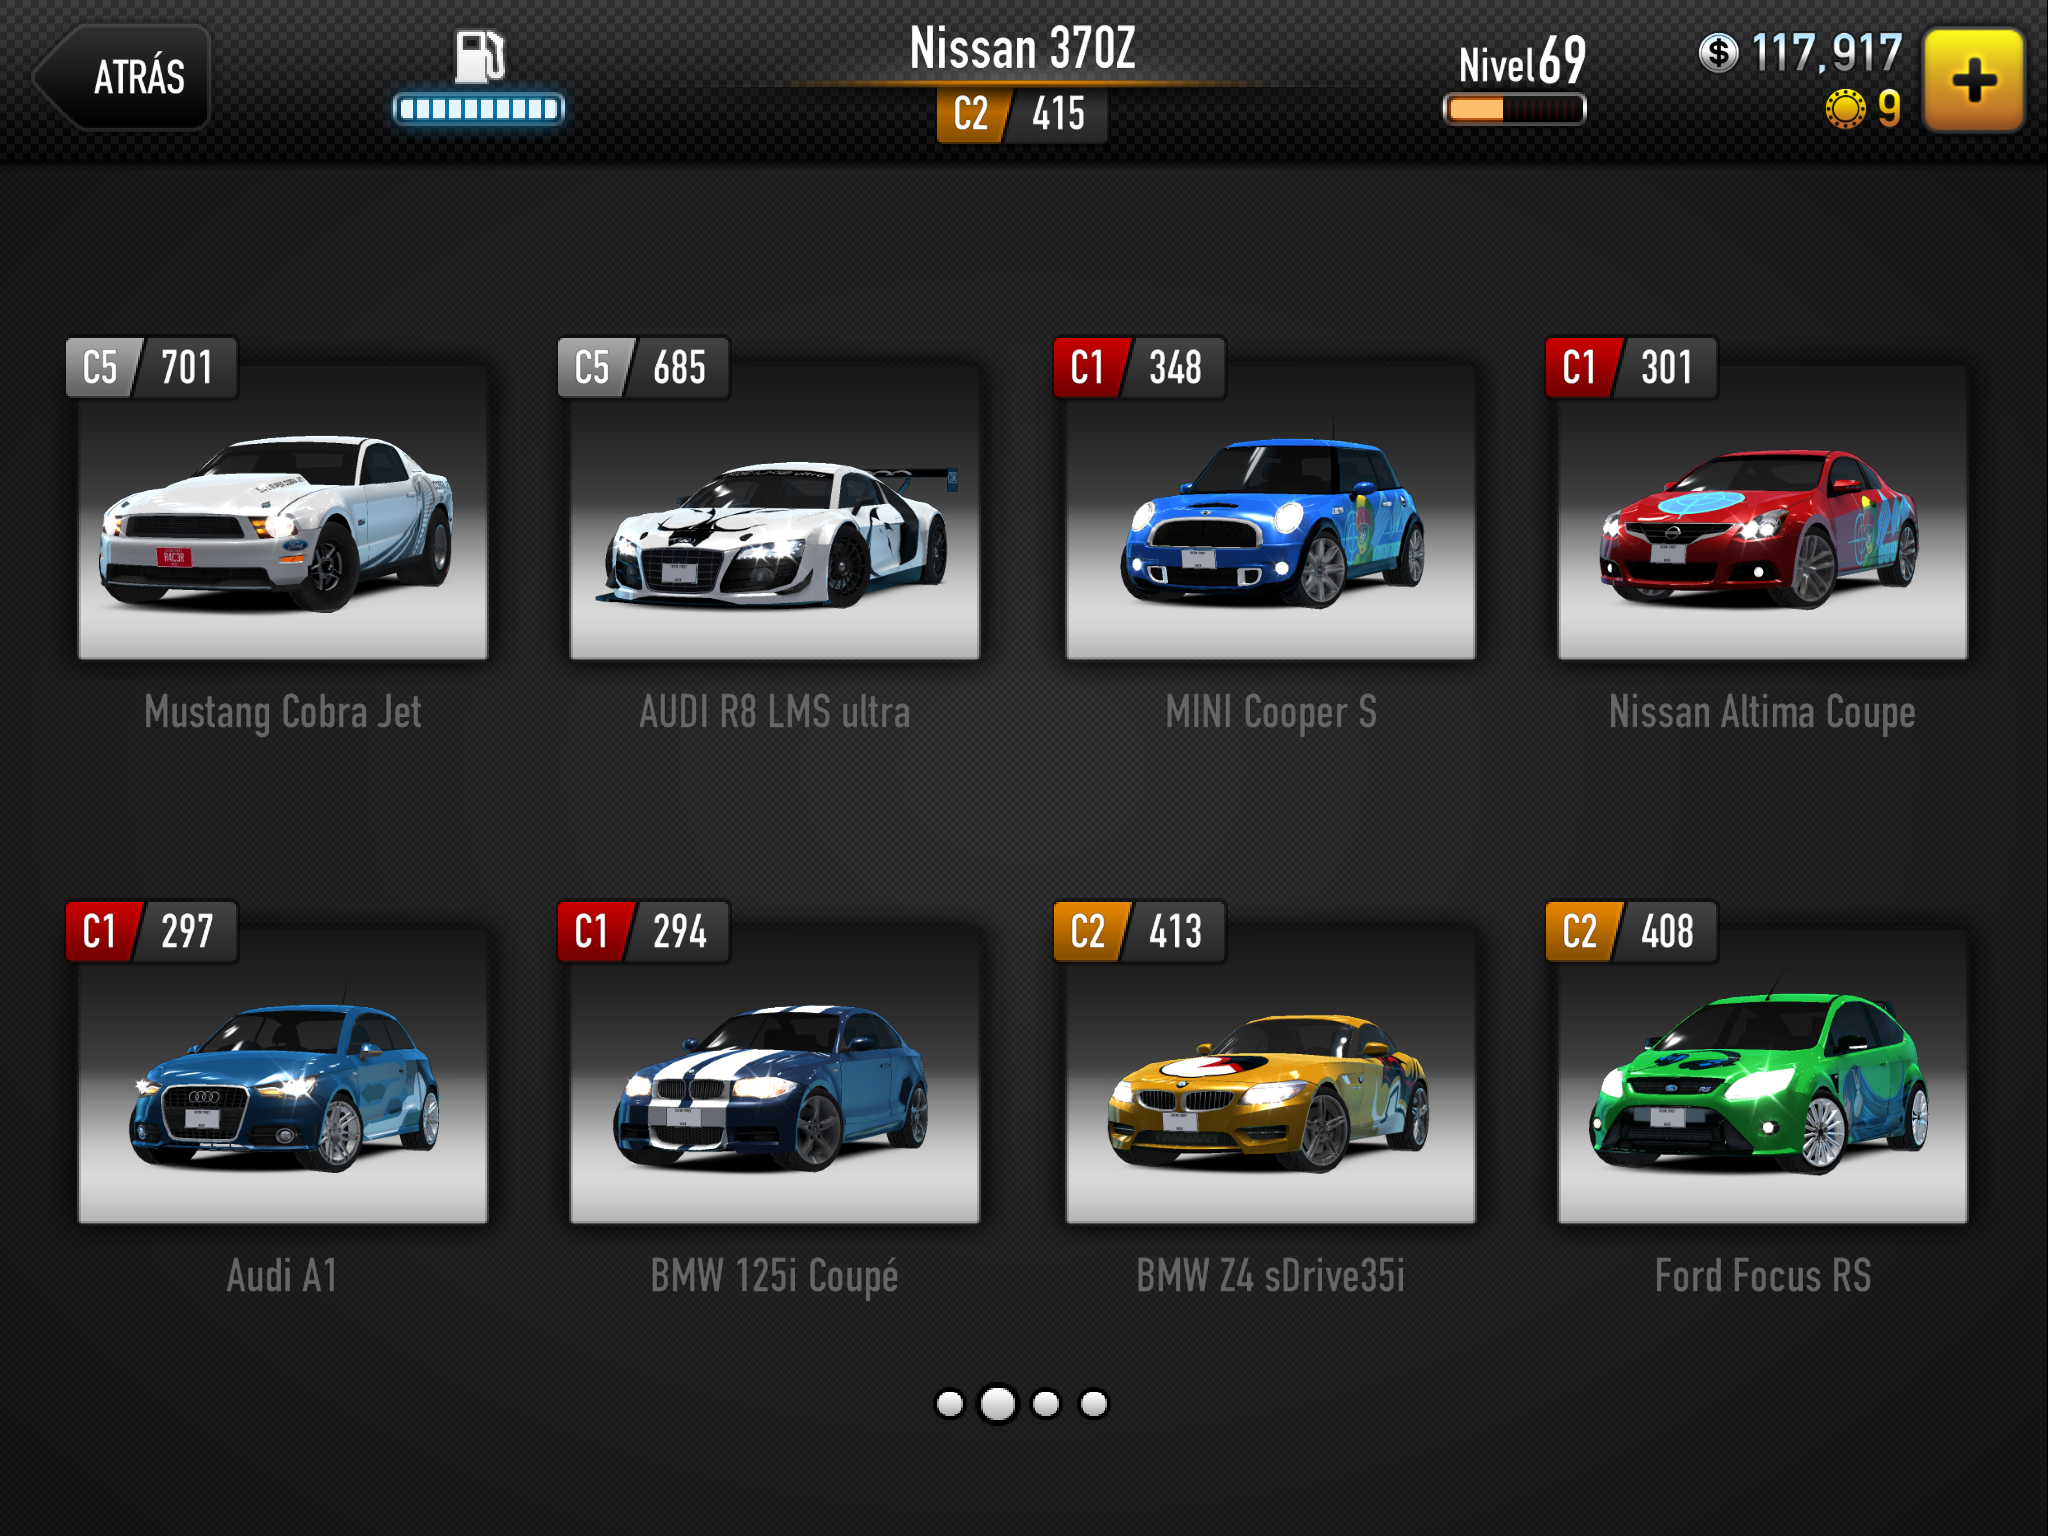 In-app purchase, CSR Racing la mejor estrategia